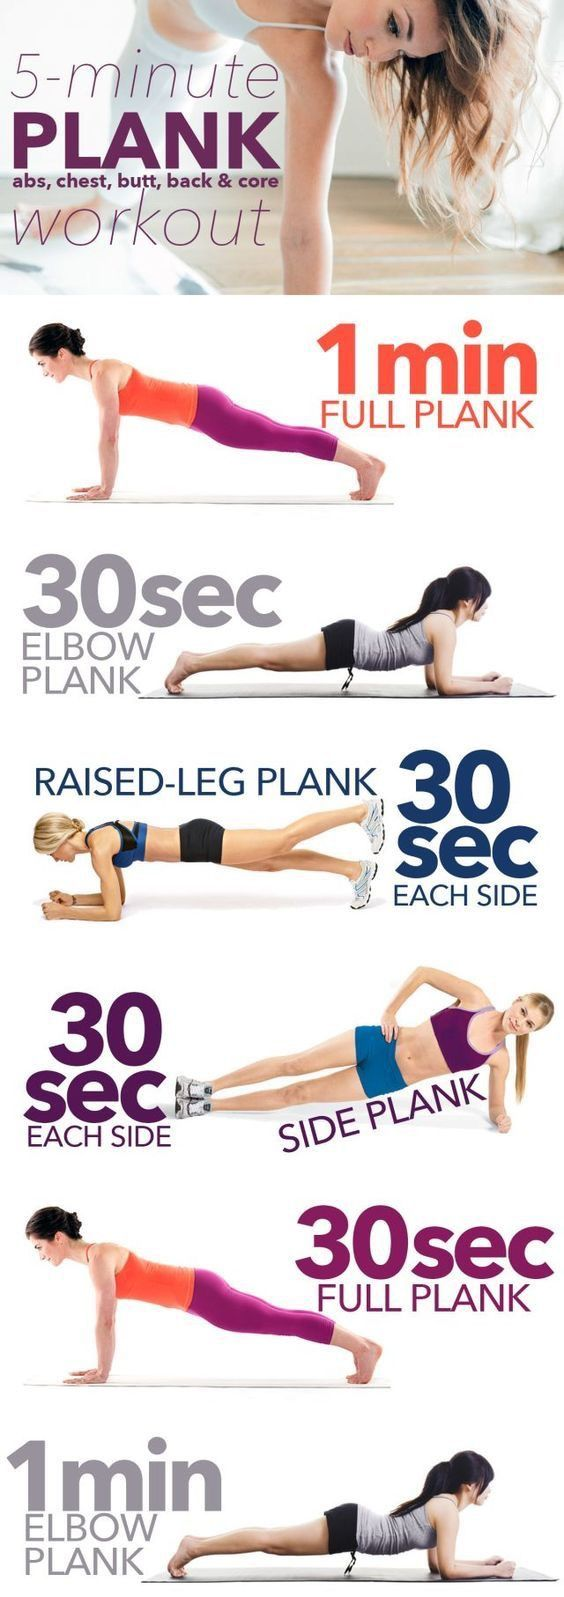 Plank Workout for Abs, Chest, Butt, Back, and Core *